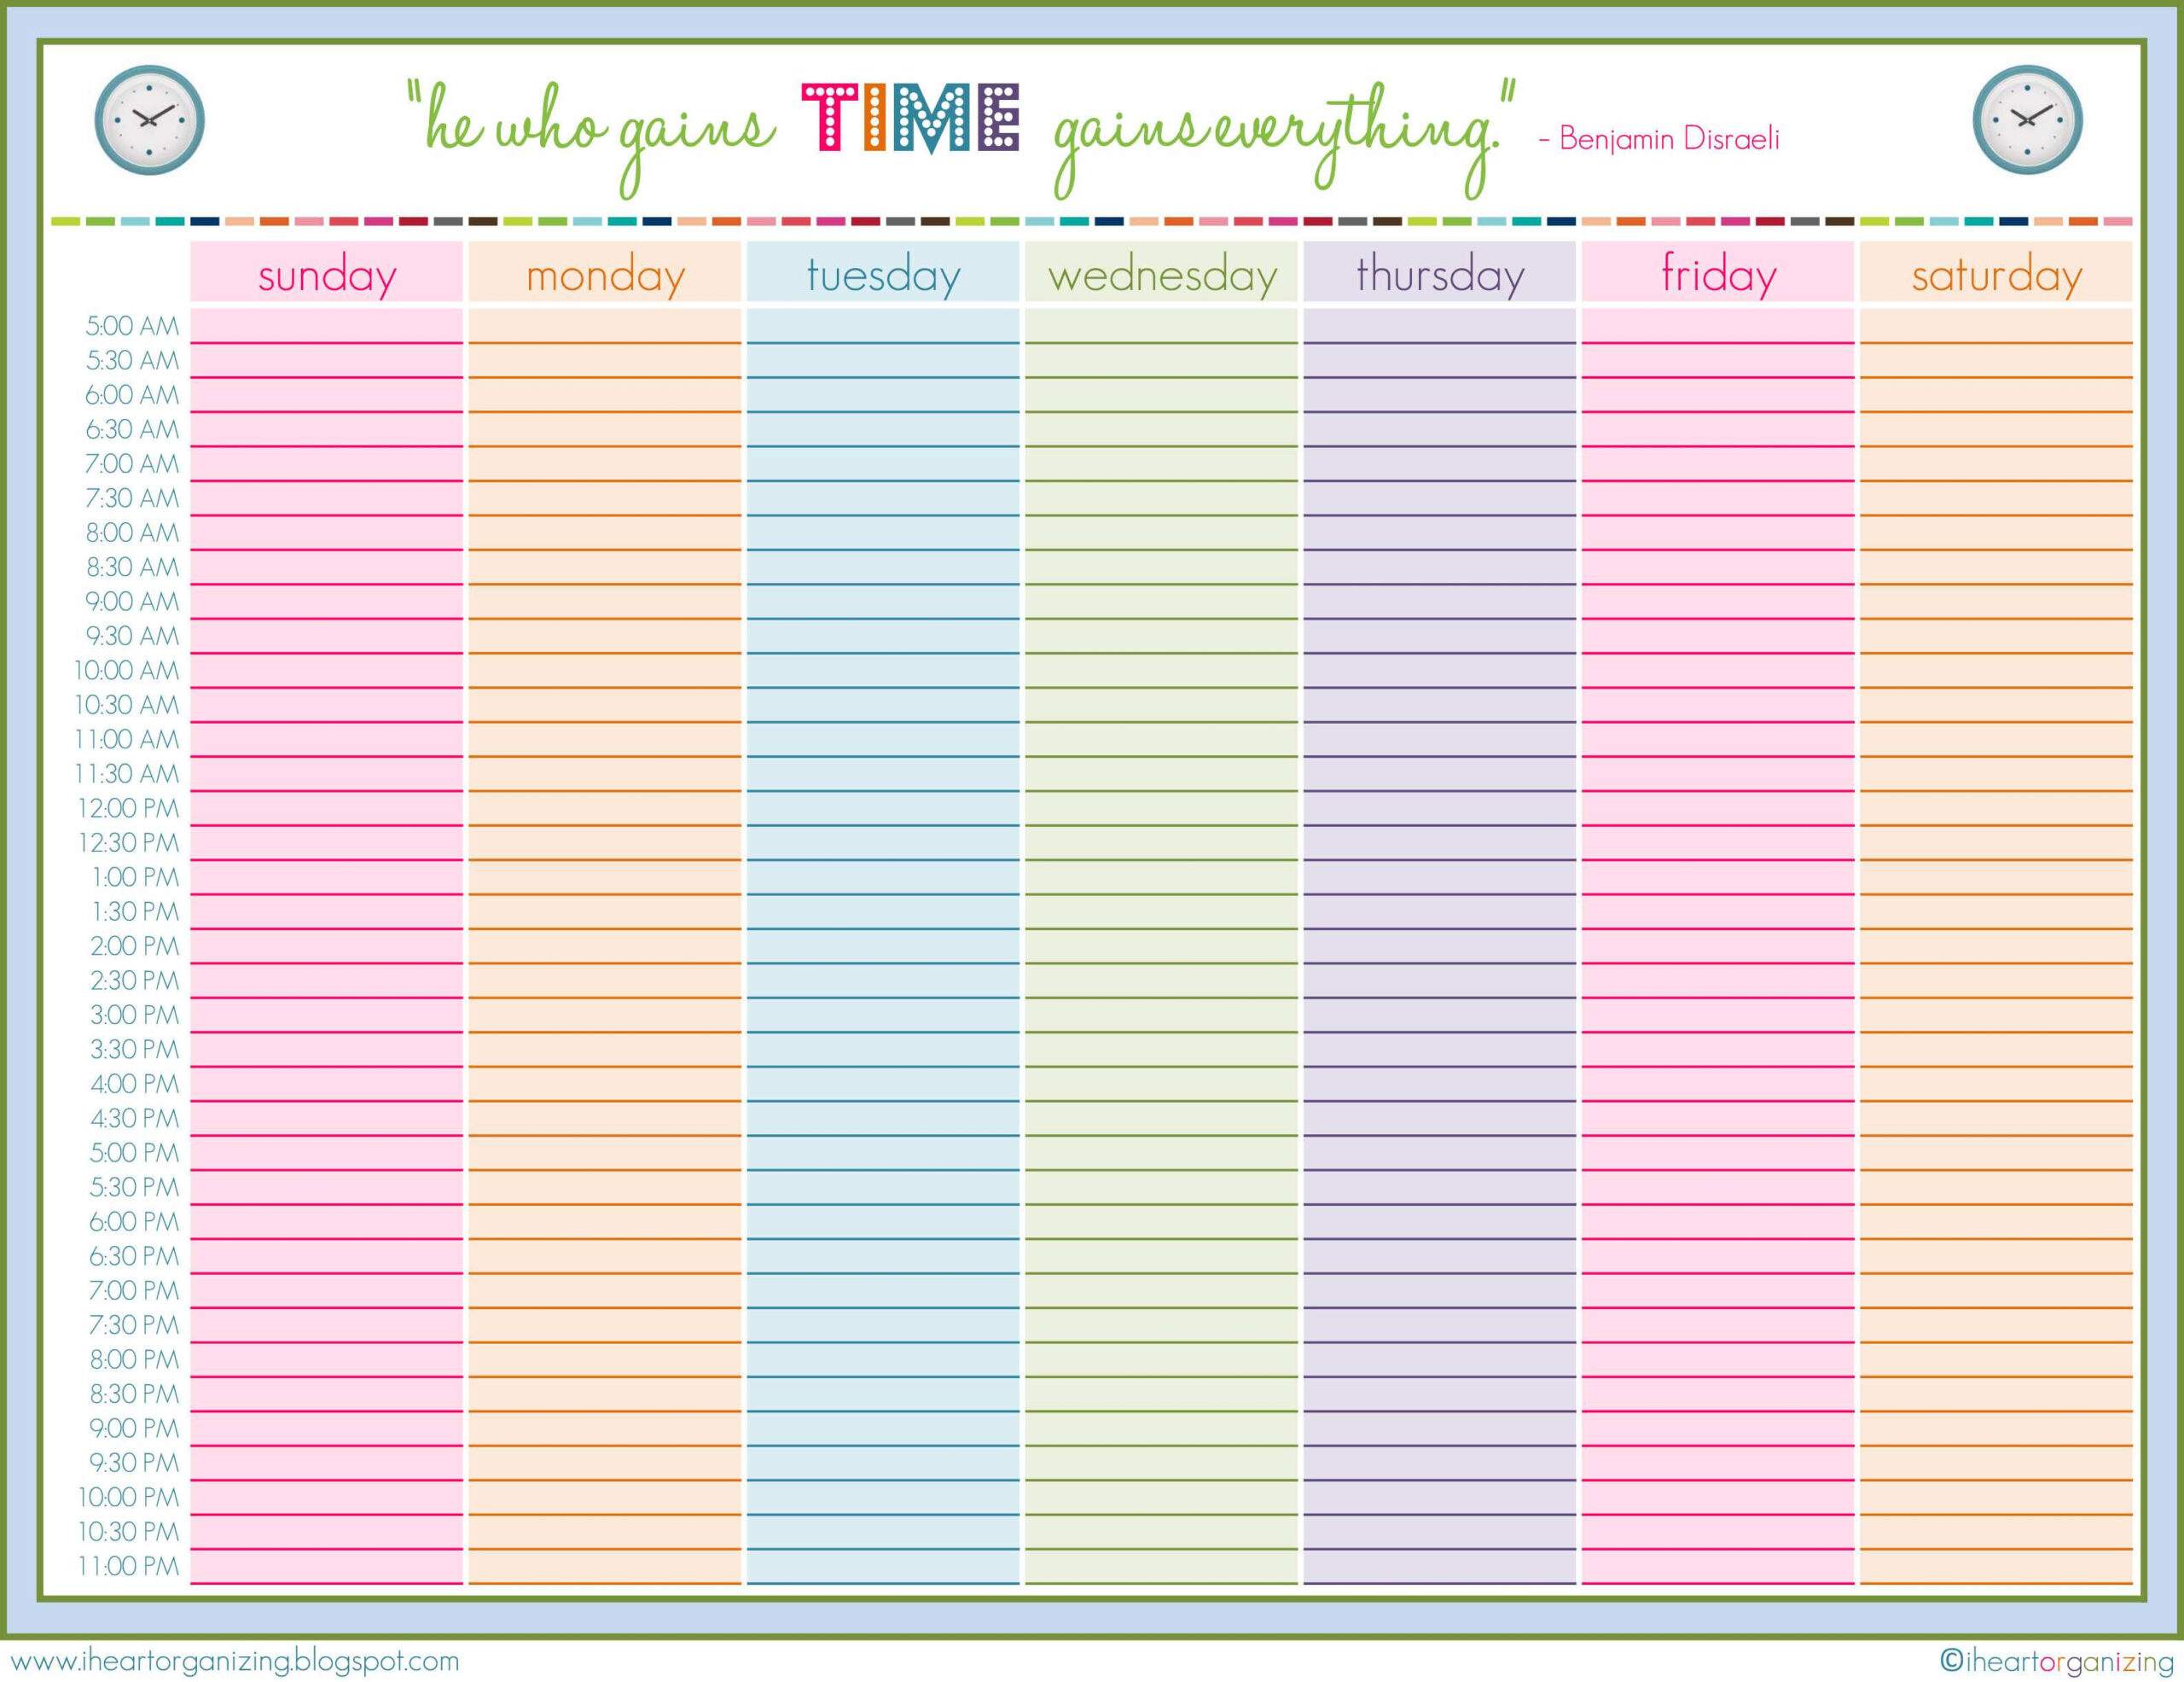 71 Customize Weekly Class Schedule Template Pdf In throughout Weekly Class Schedule Template